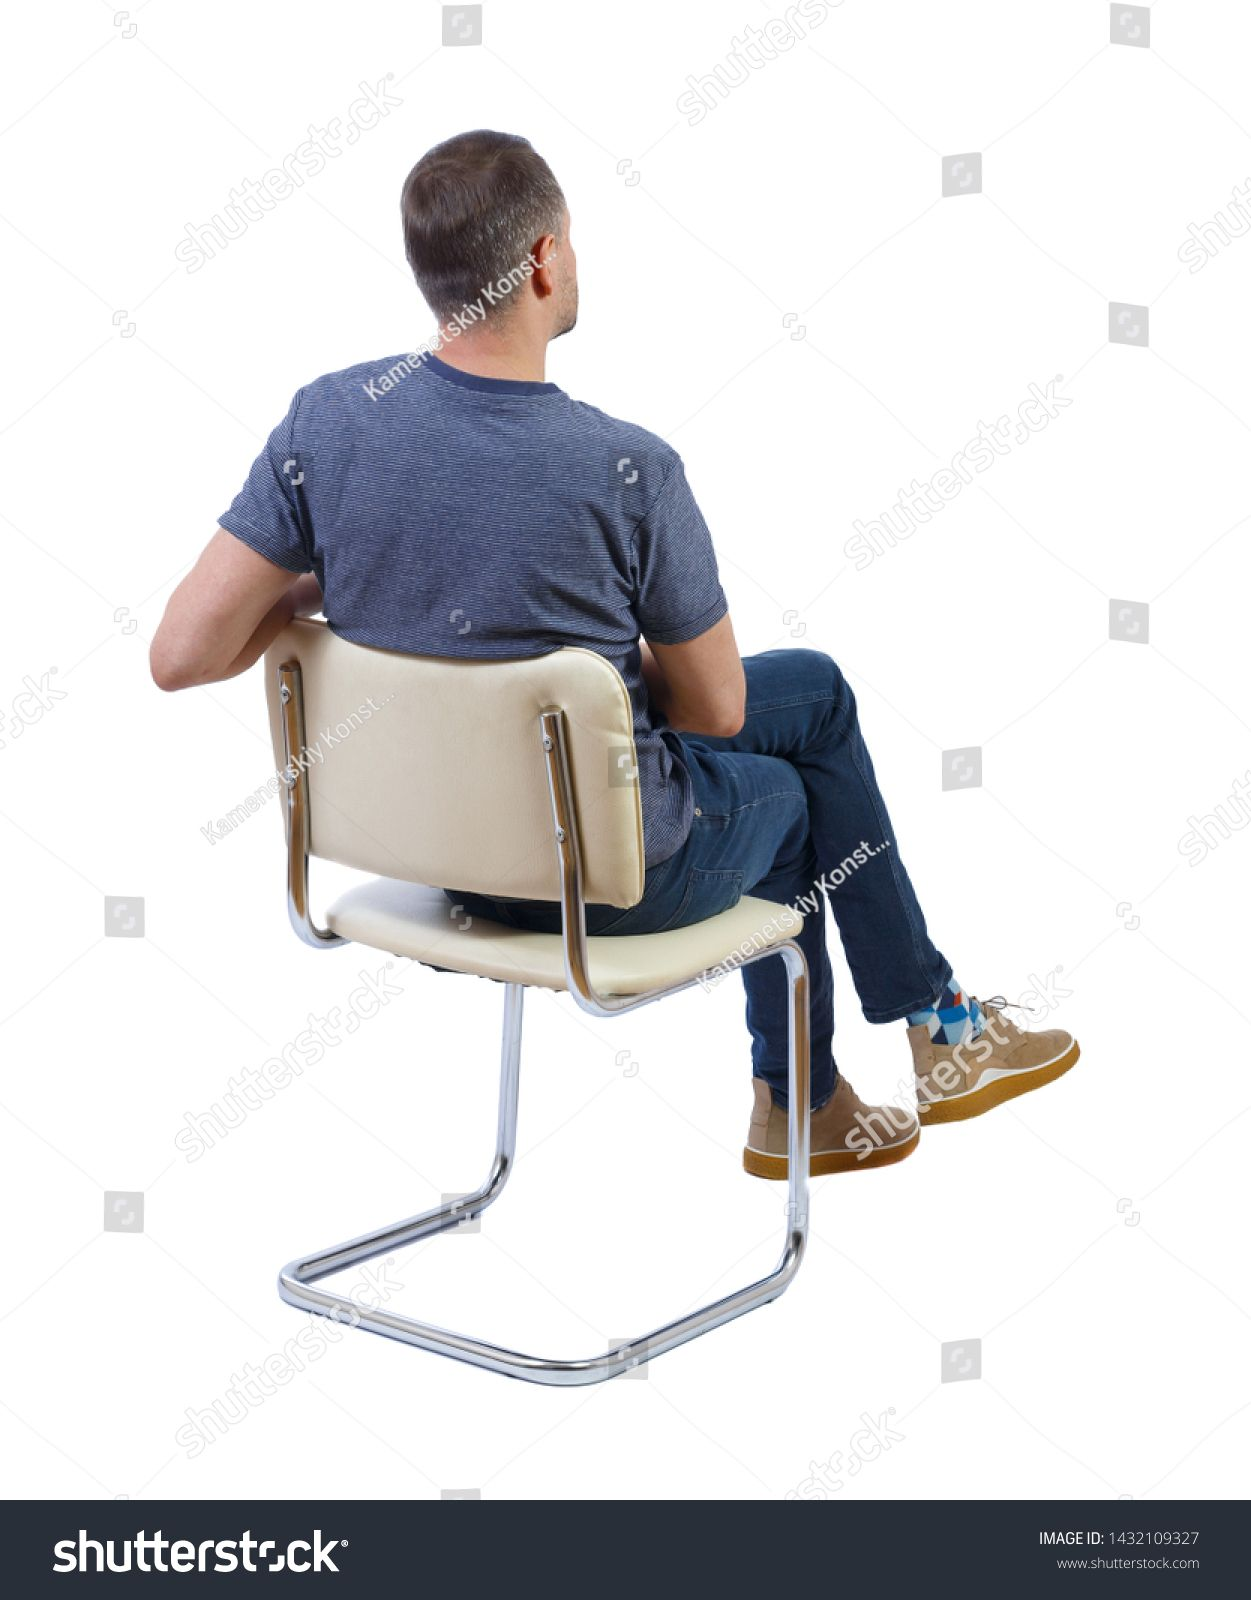 Back View Of A Man Sitting On A Chair Rear View People Collection The Guy Sits Cross Legged Backside View O Sitting Pose Reference Sitting Poses Man Sitting